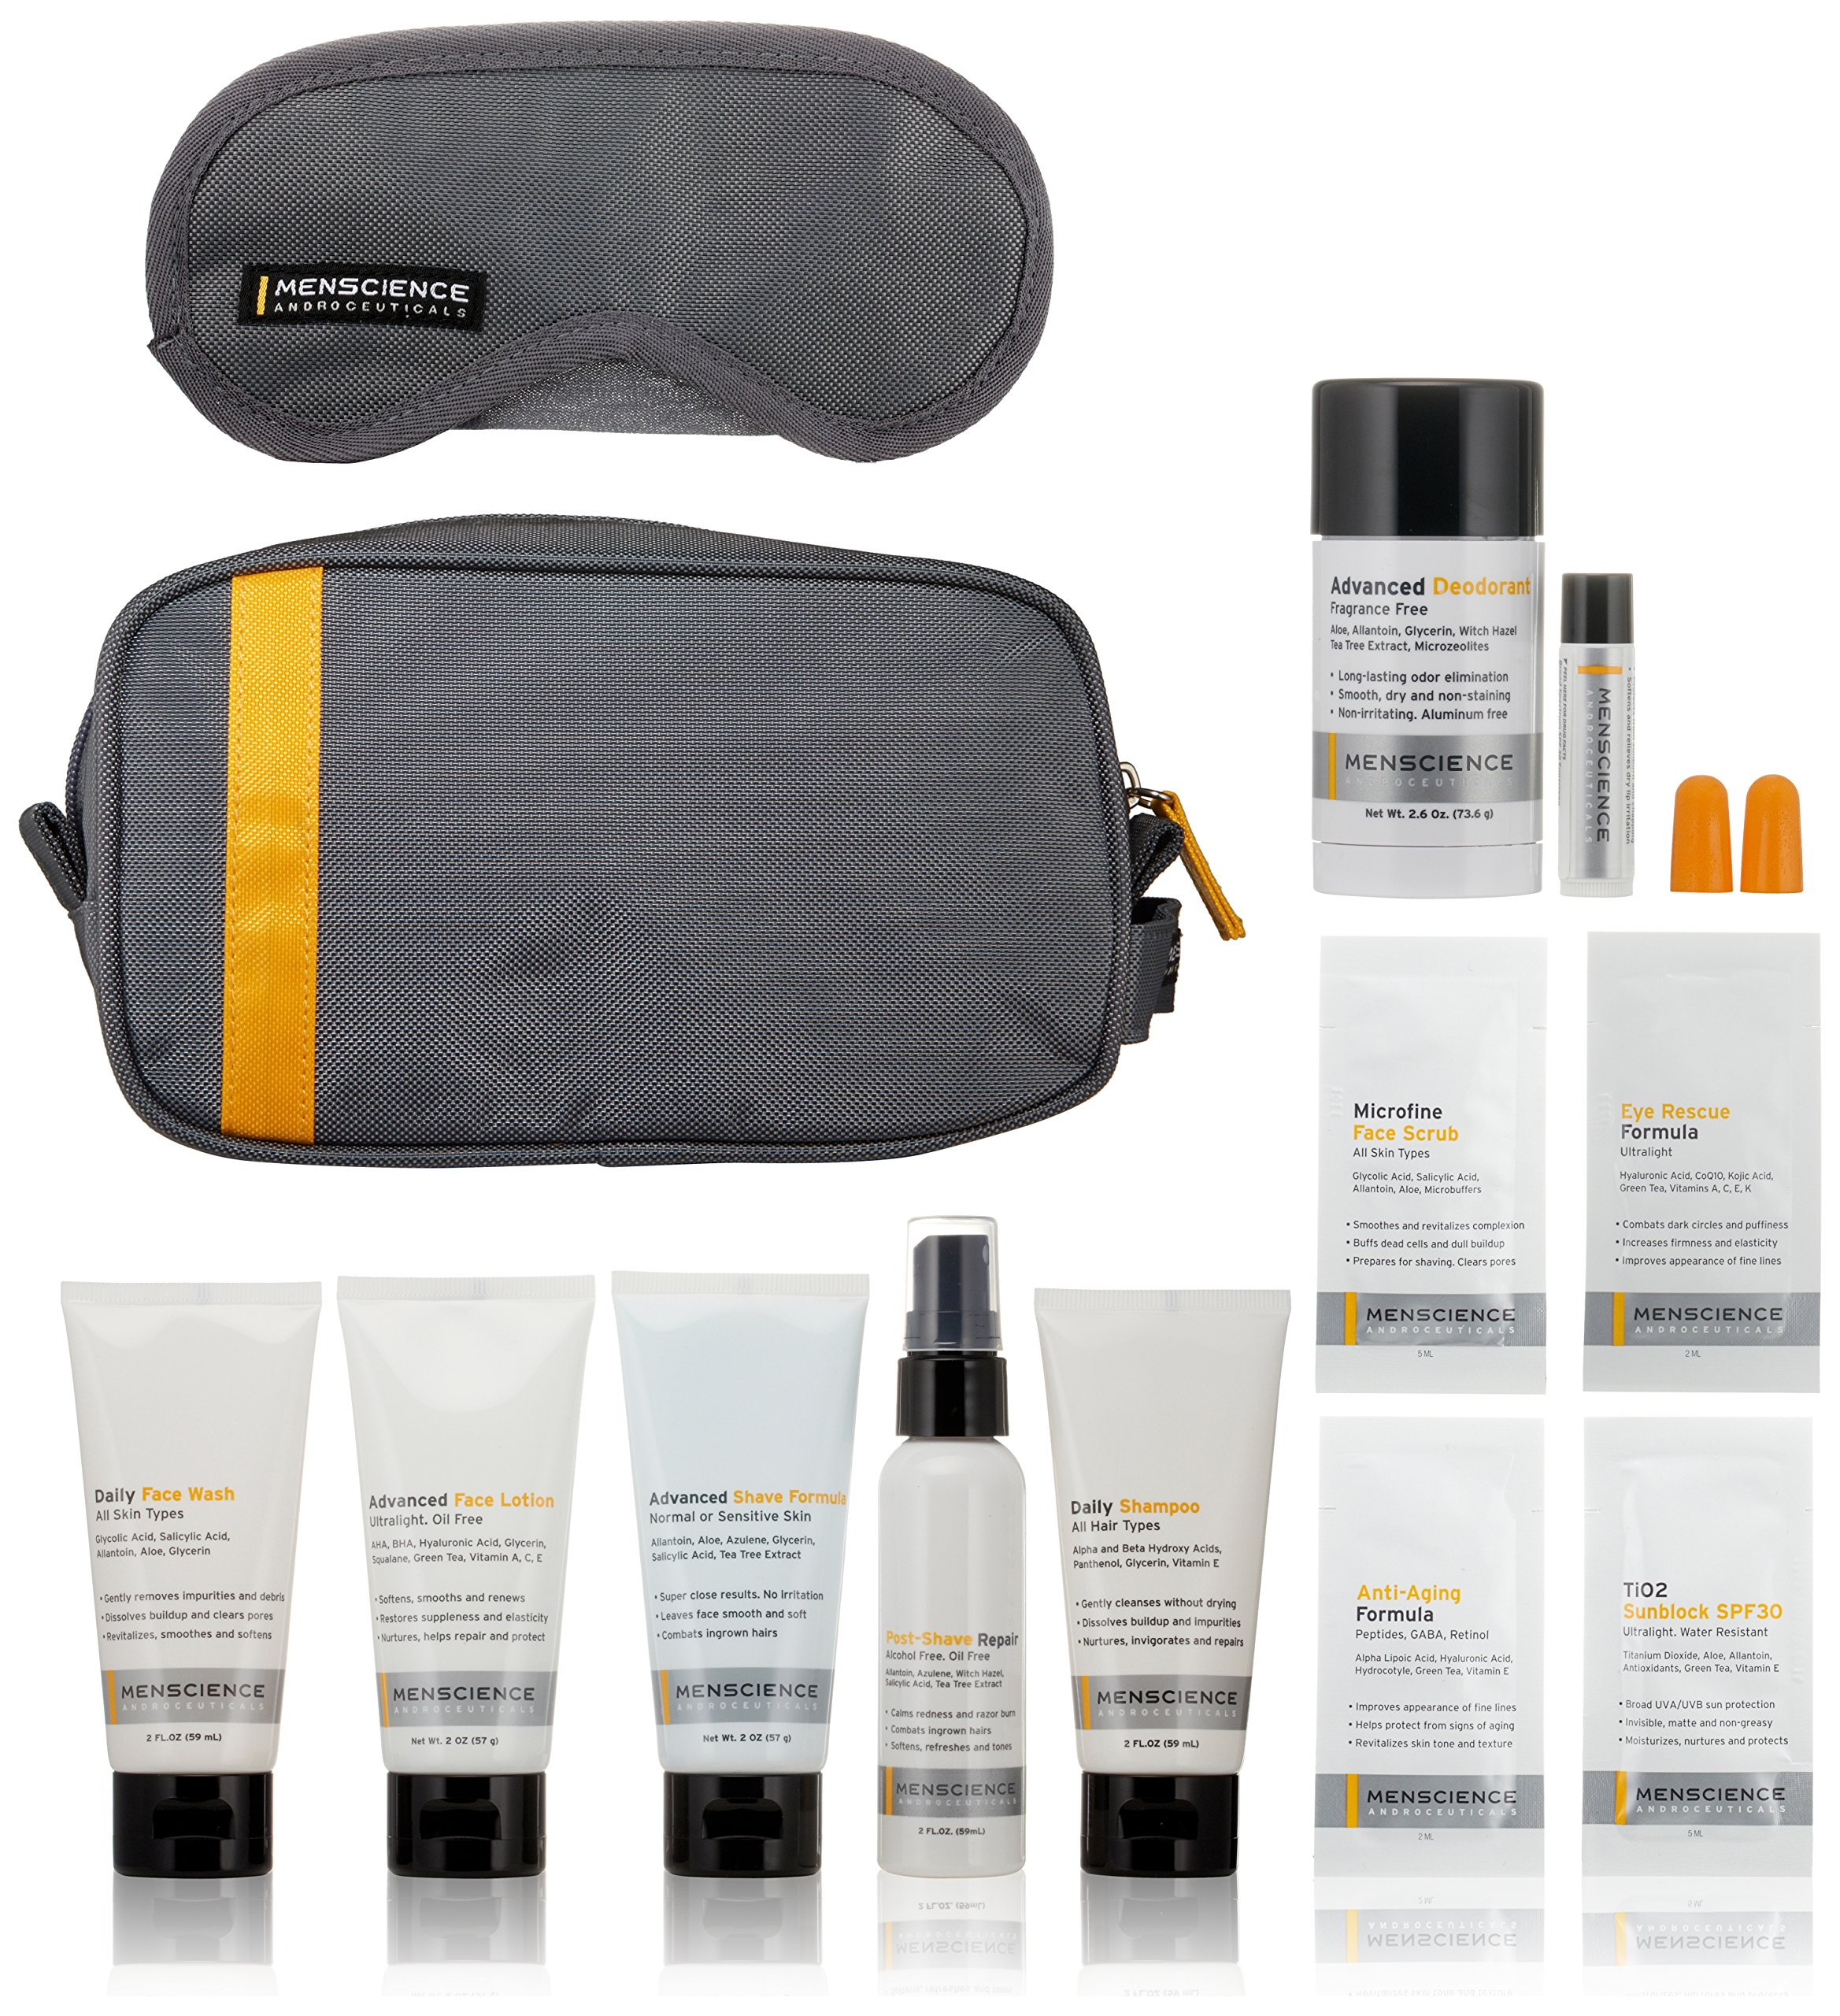 MenScience Androceuticals Travel Kit by MenScience Androceuticals